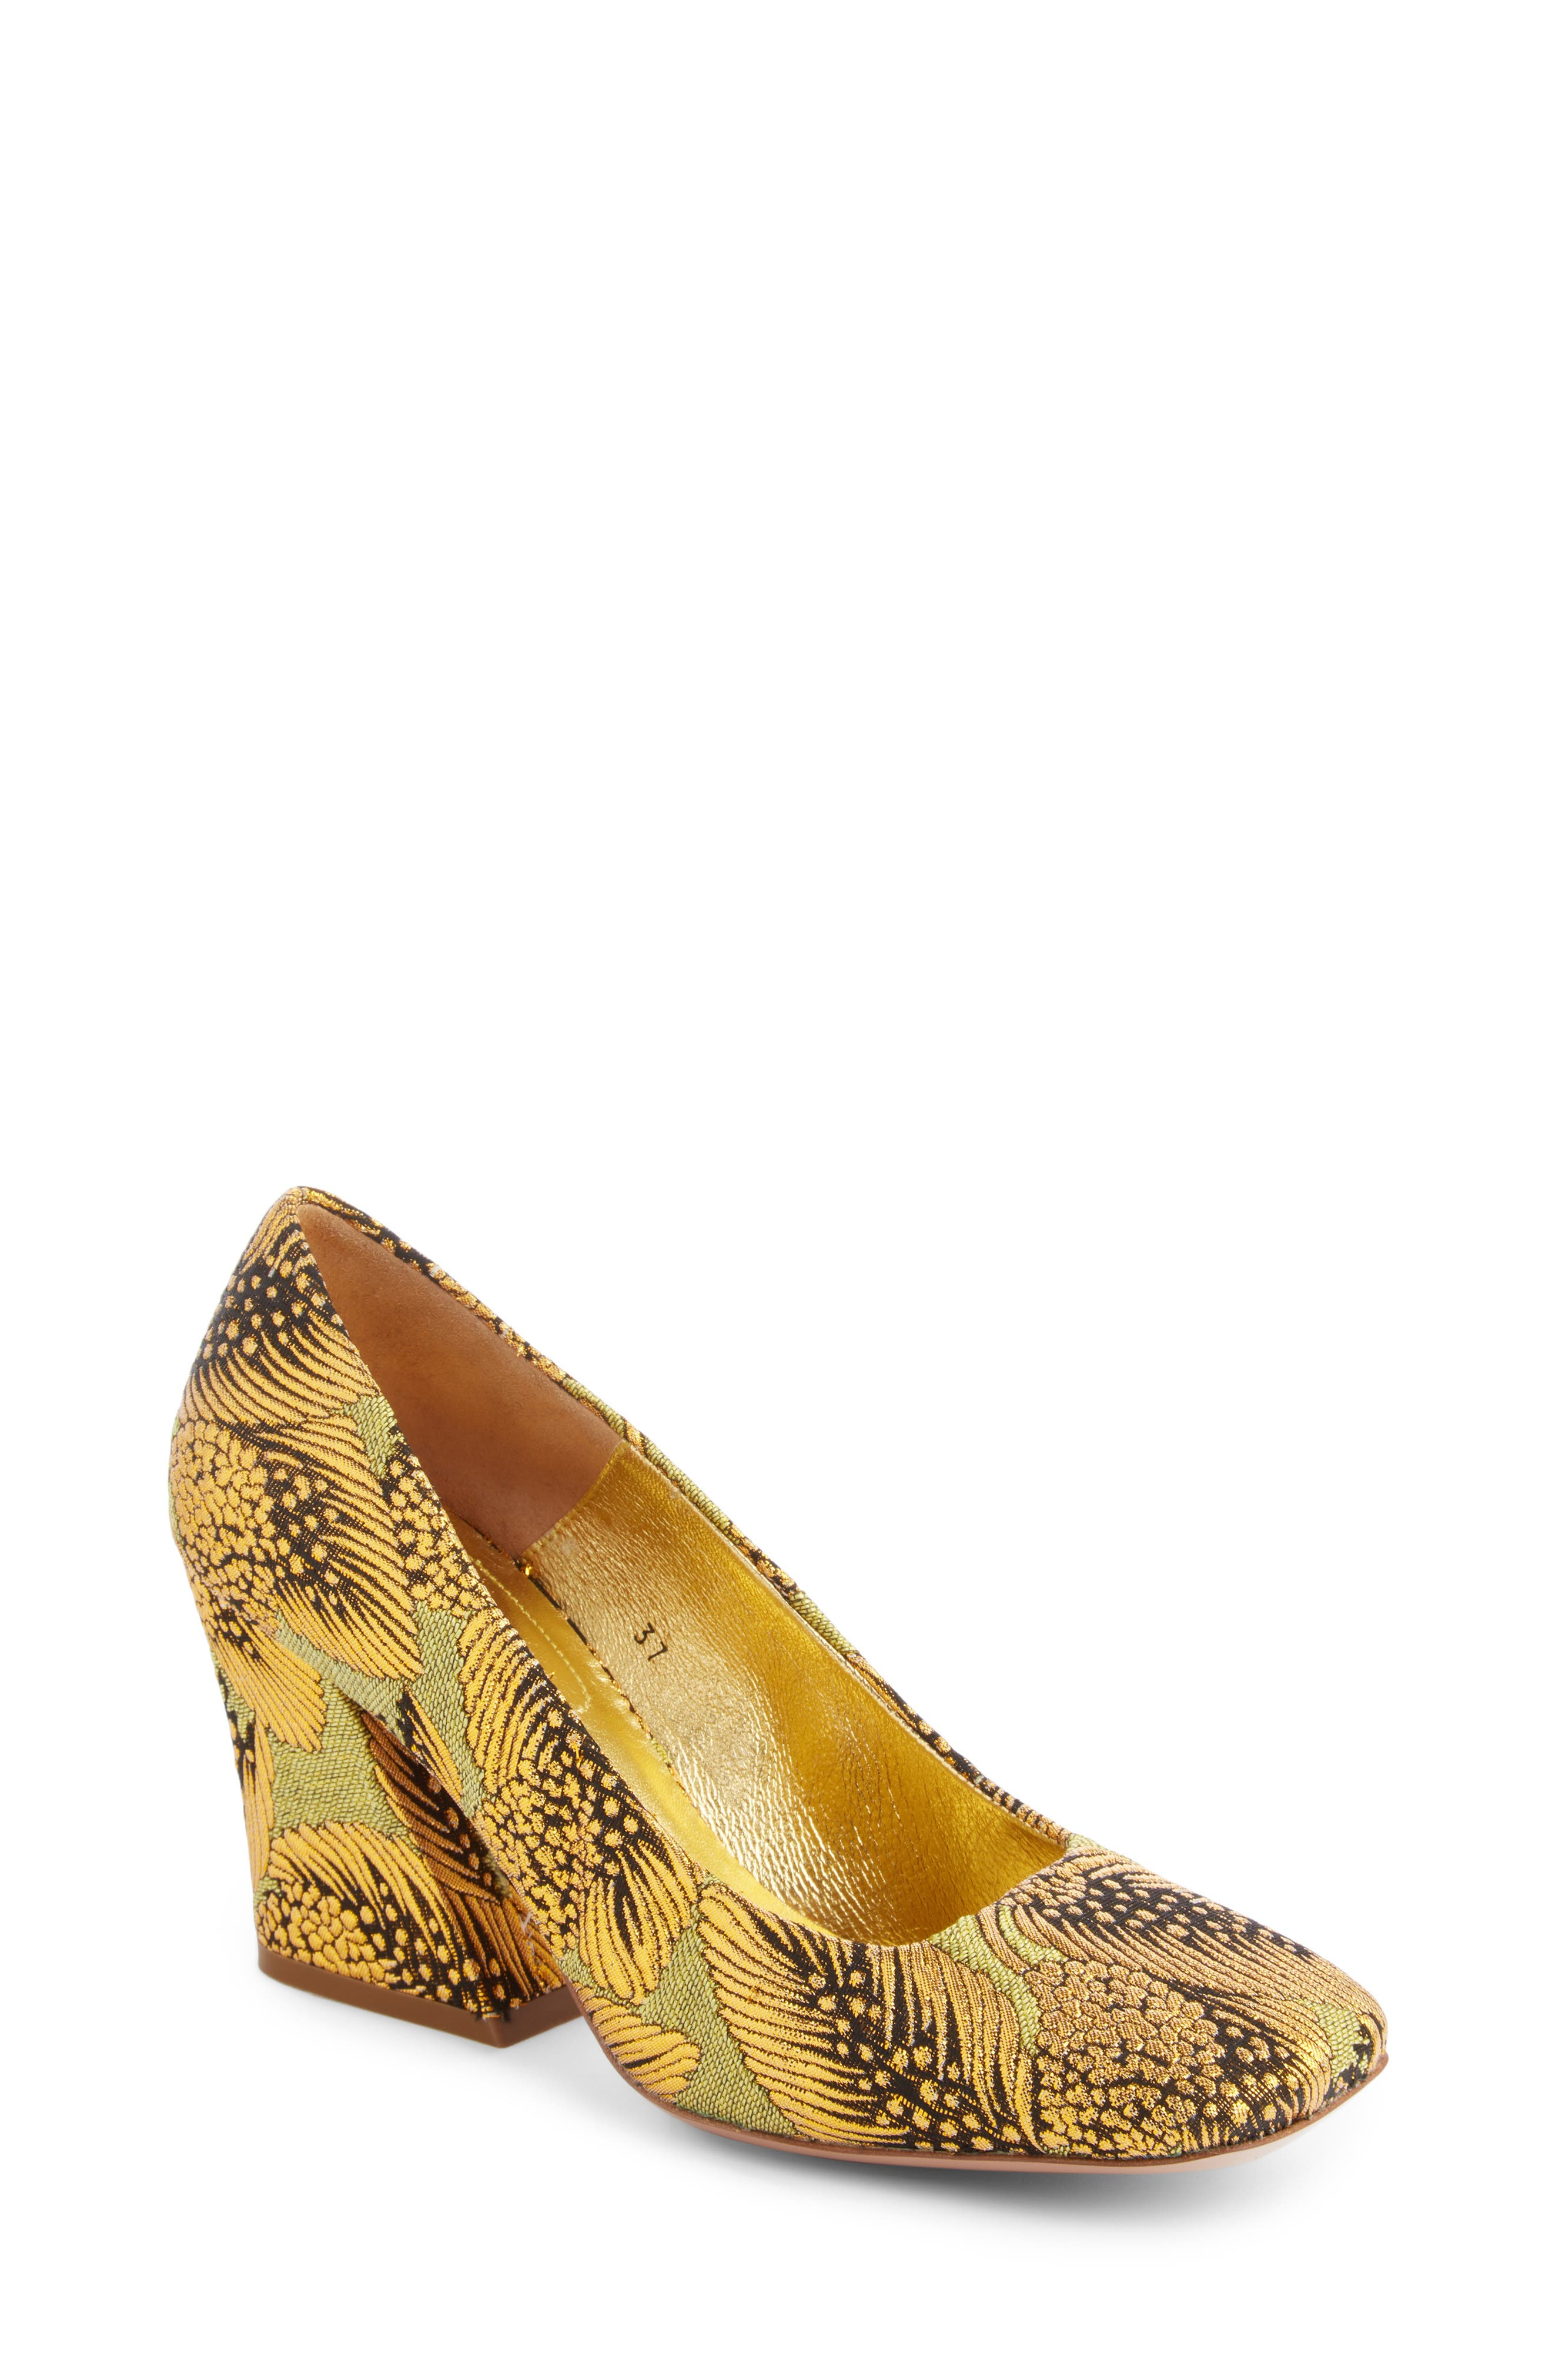 Leaf Print Angle Heel Pump,                         Main,                         color, 710